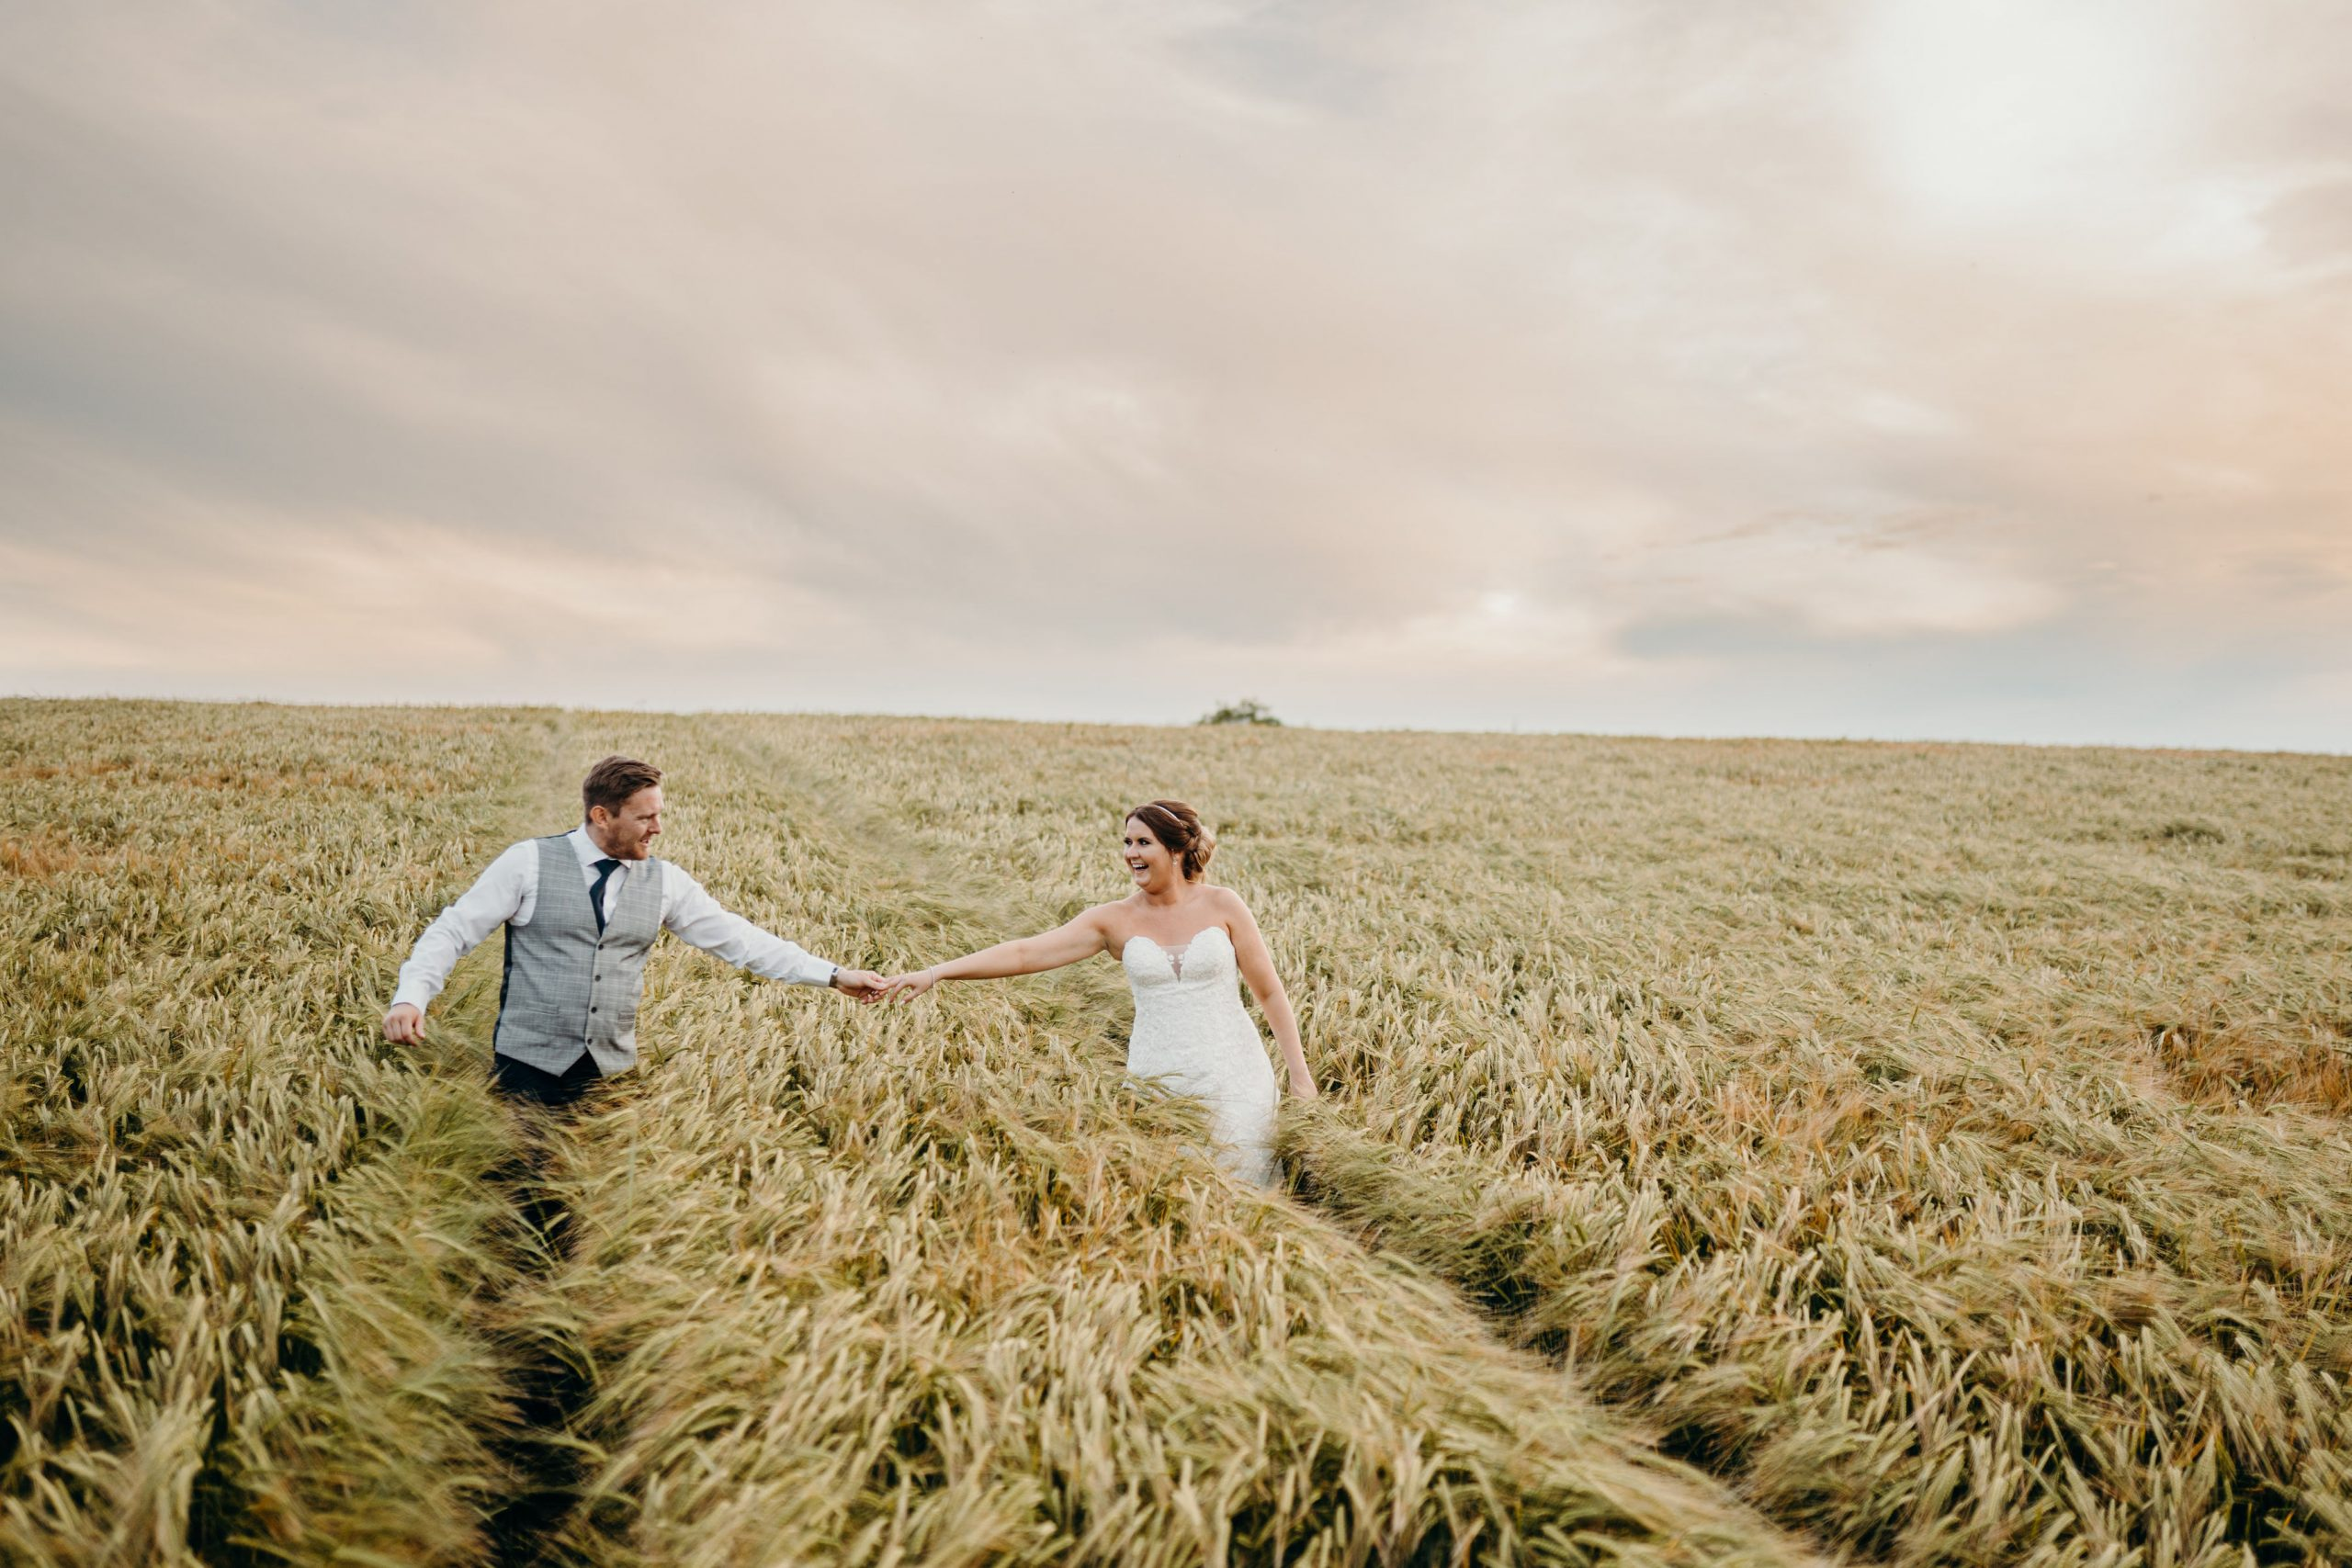 Rebecca and Alan | Jane 2019 | Peter Mackey Photography